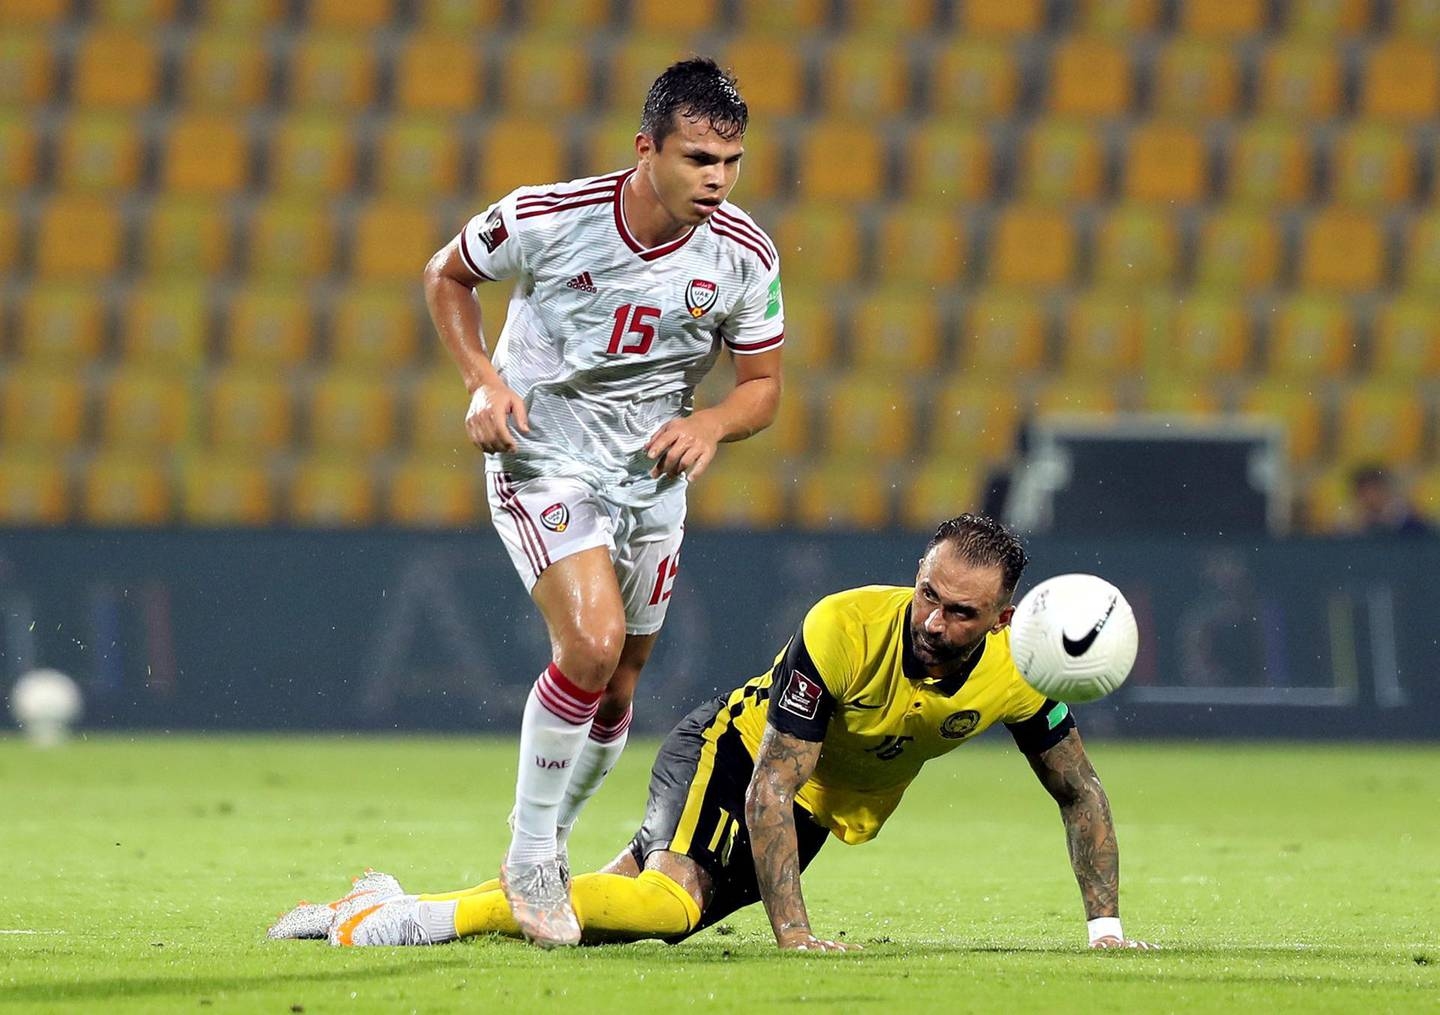 Fabio De Lima of the UAE battles with Guilherme Lucrecio of Malaysia during the game between the UAE and Malaysia in the World cup qualifiers at the Zabeel Stadium, Dubai on June 3rd, 2021. Chris Whiteoak / The National.  Reporter: John McAuley for Sport